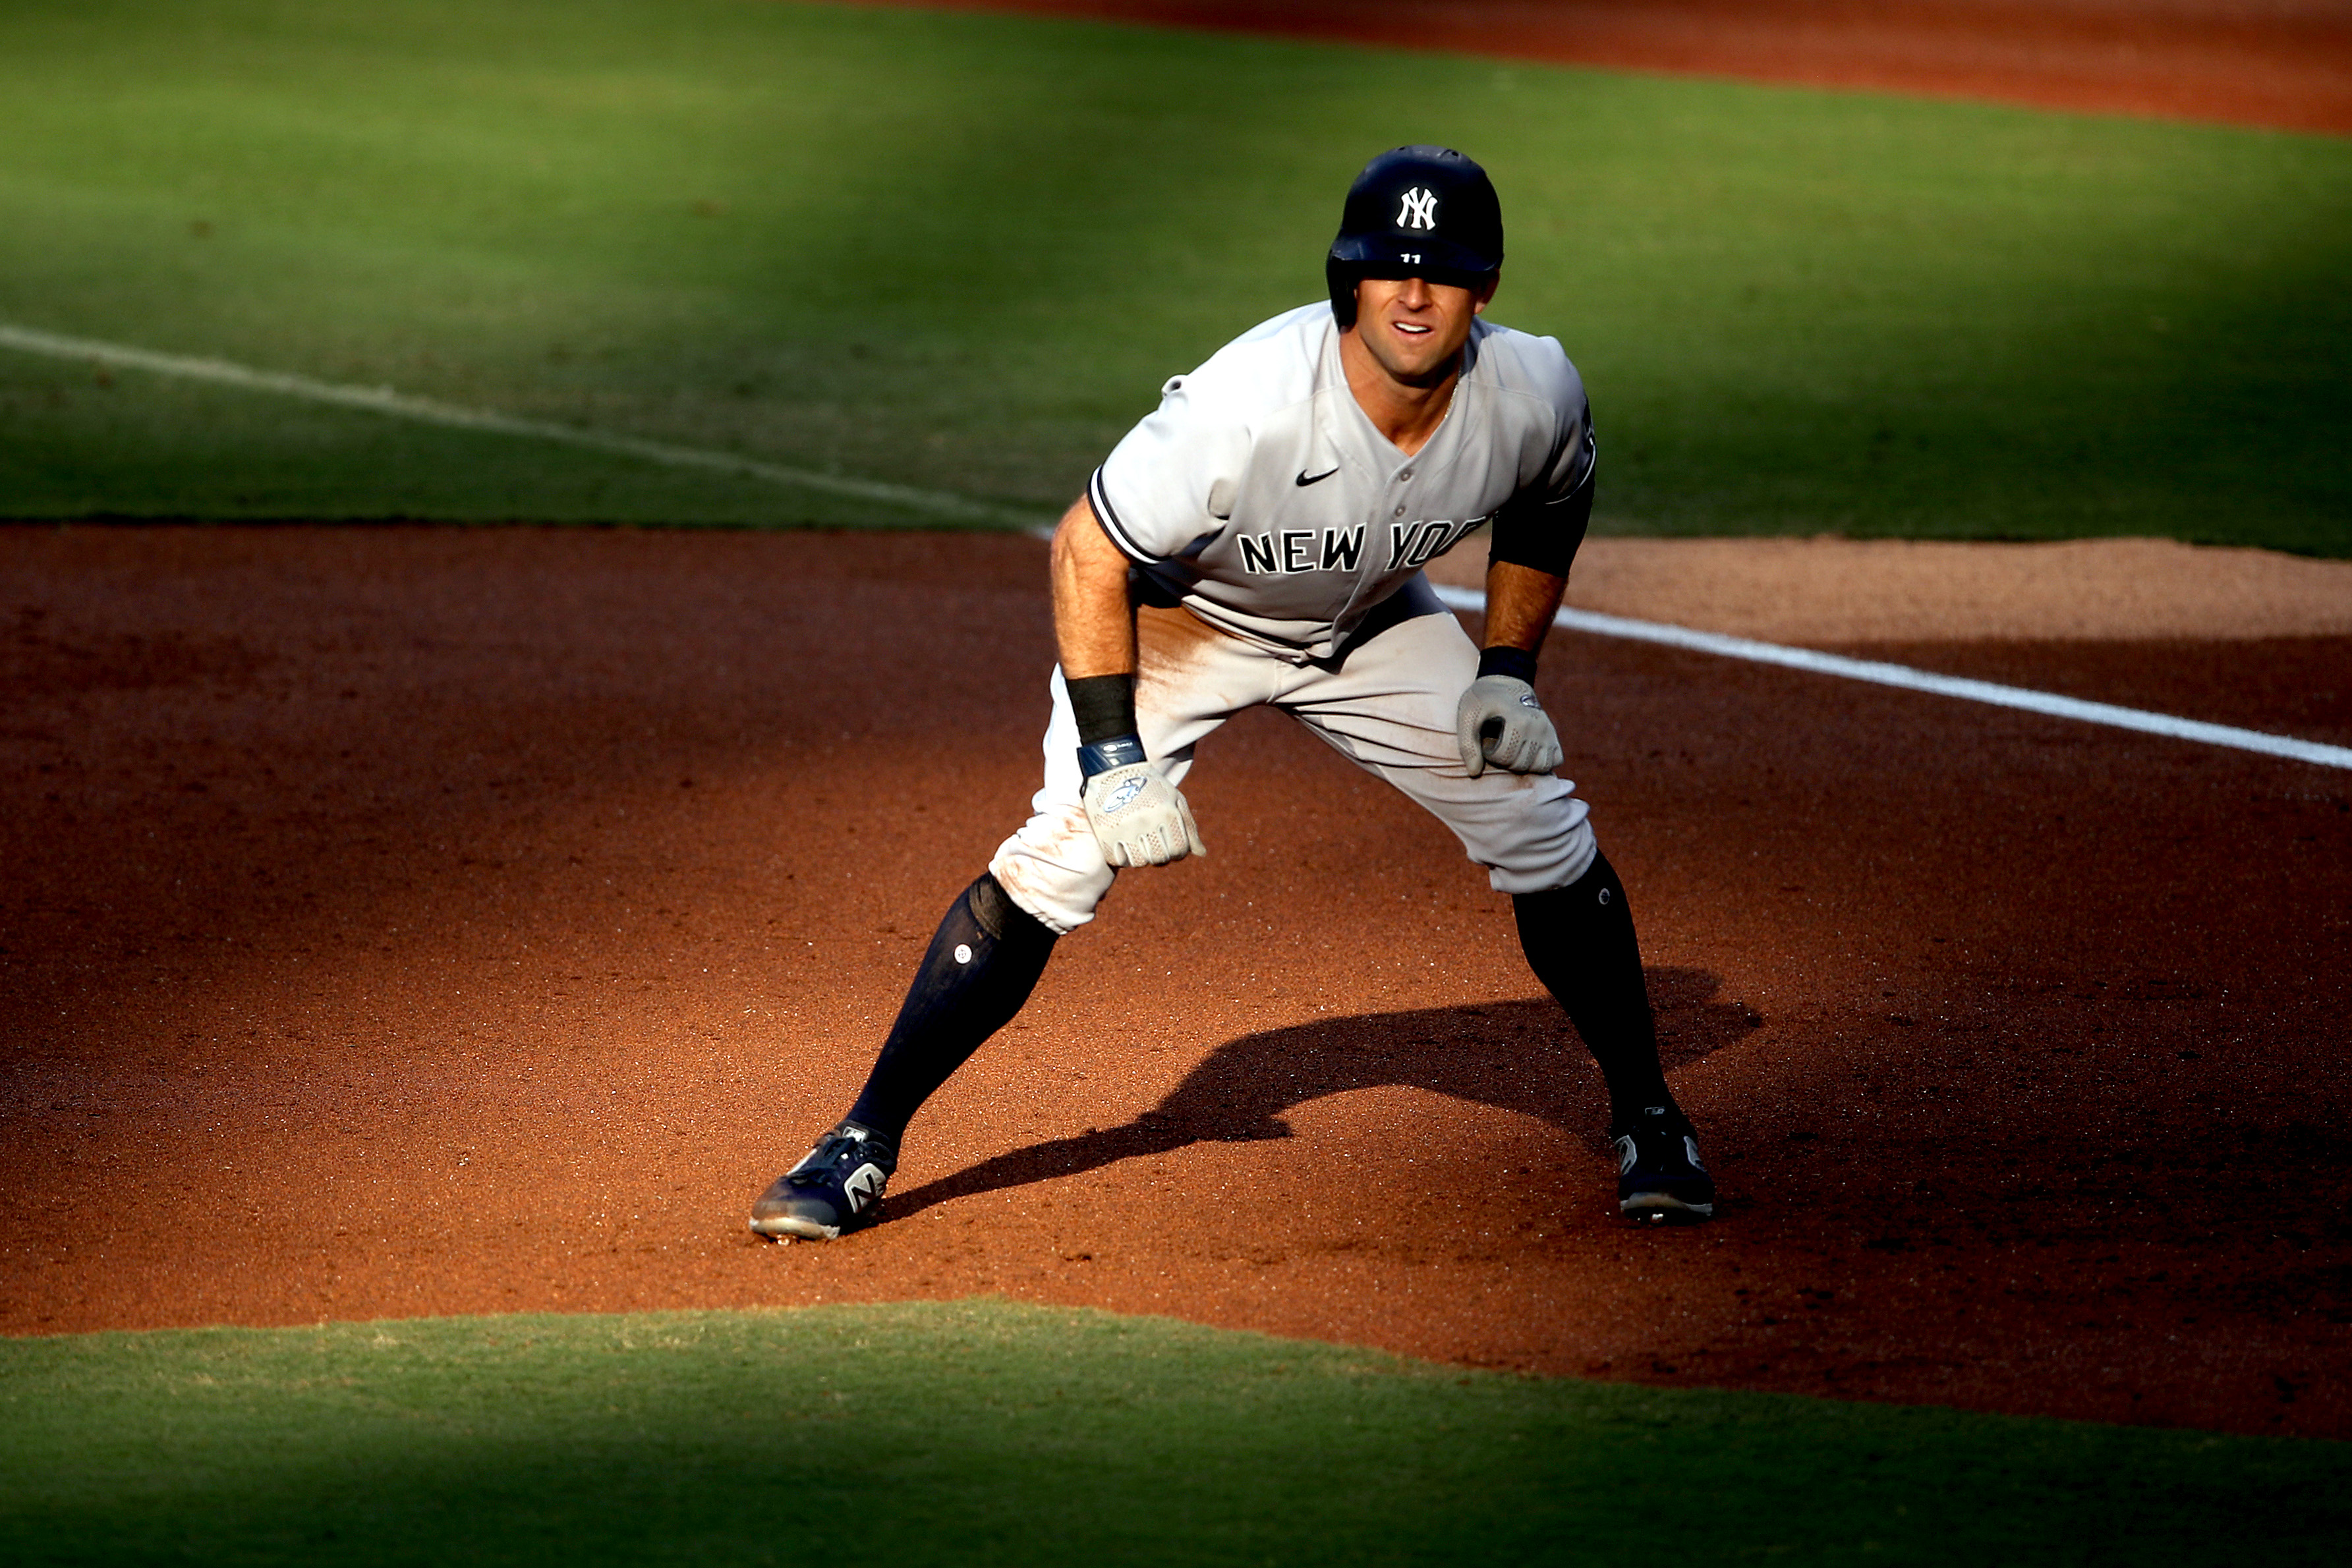 Brett Gardner has been a mainstay in the New York Yankees' outfield since he arrived in 2008. The Yankees and Gardner may be parting ways, however.